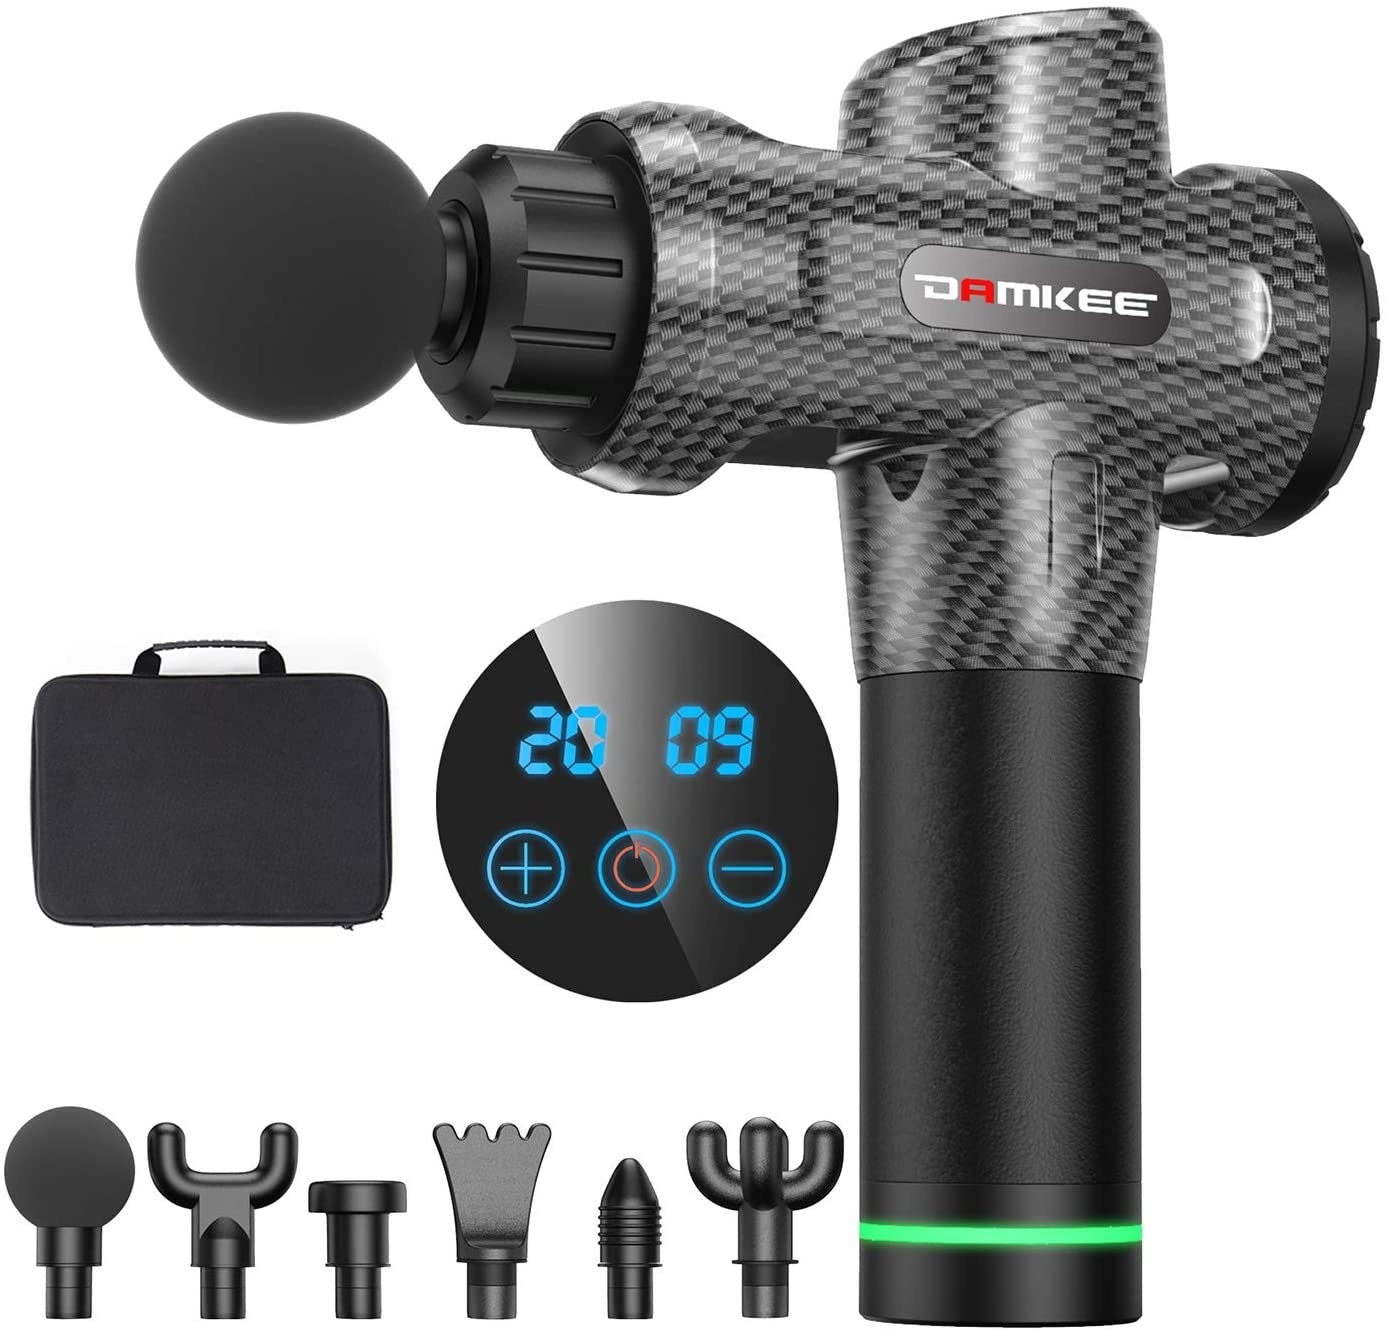 The Damkee Massage Gun with six various attachments